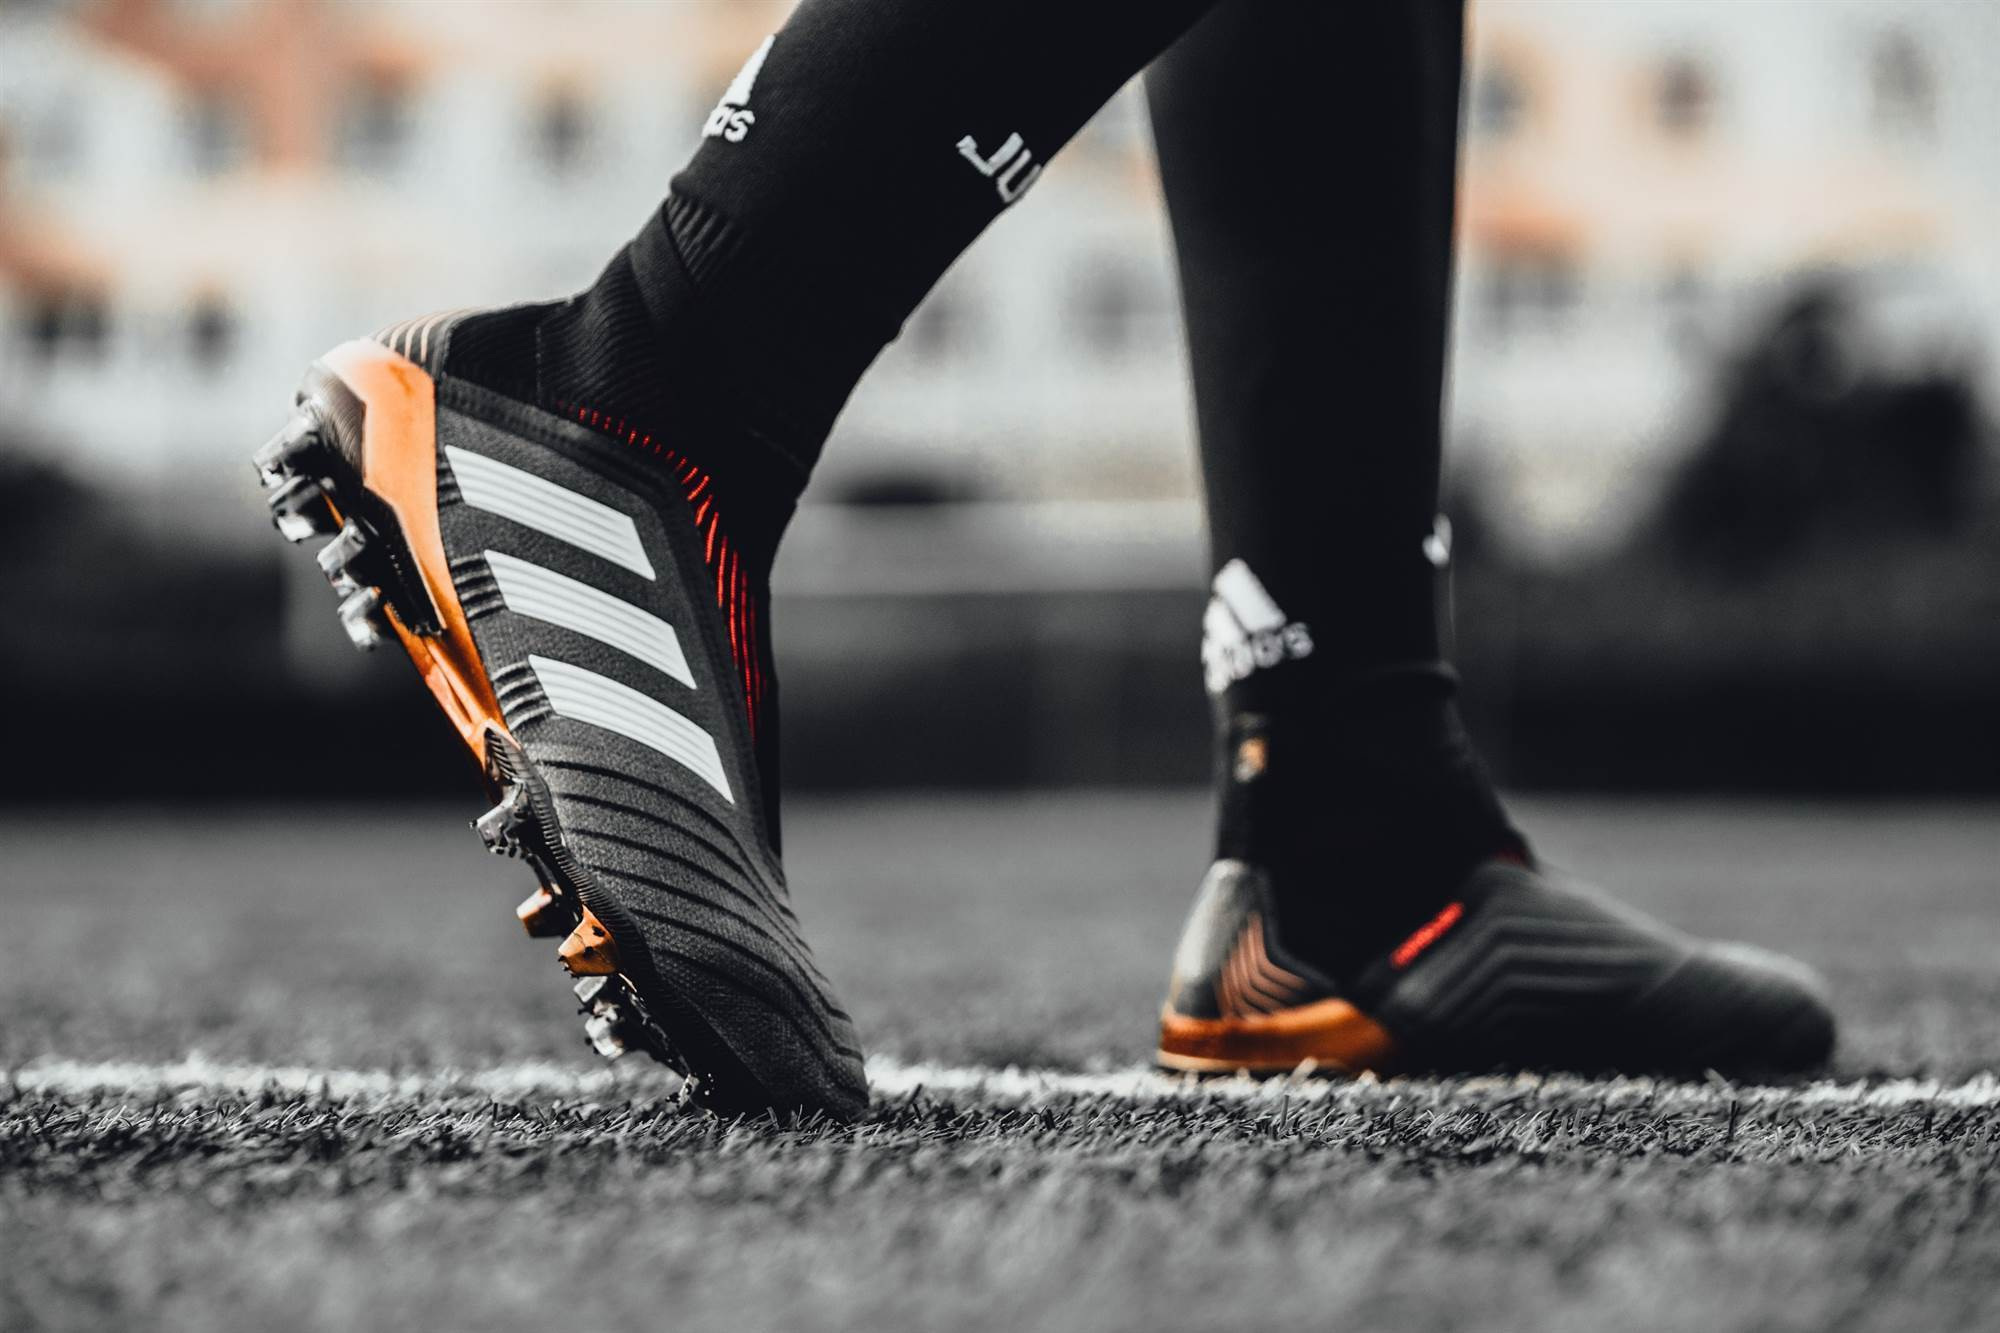 e3c844d3d8a5 Gallery  New adidas Predator 18+ boots unveiled - Boots - FTBL Life